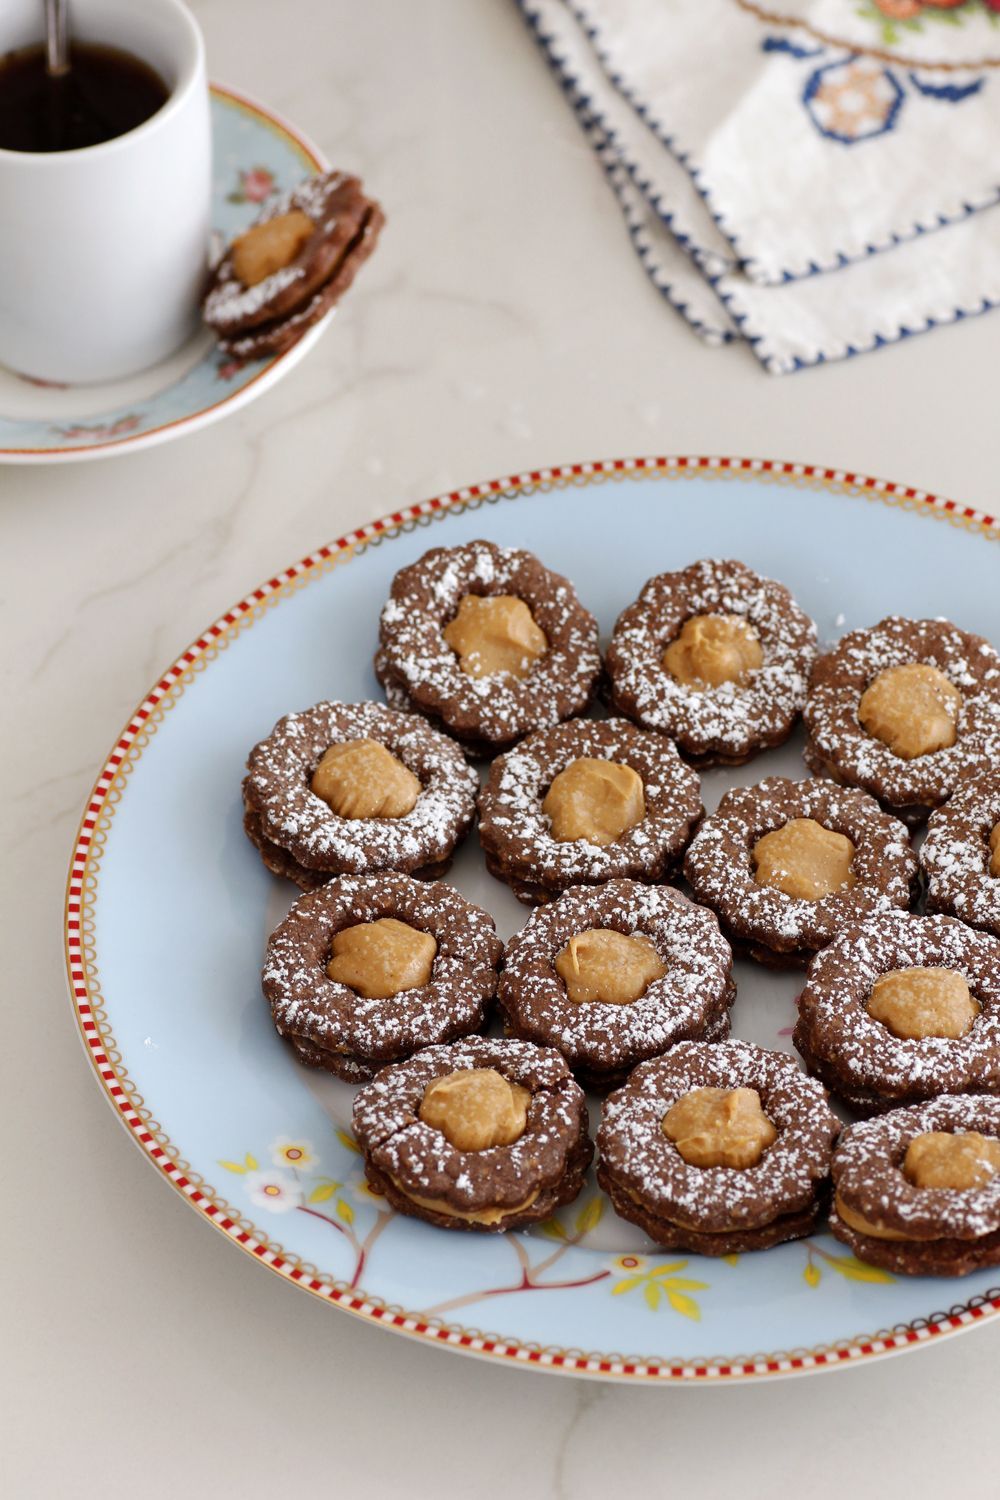 Gluten Free Chocolate and peanut Butter Sandwich Cookies